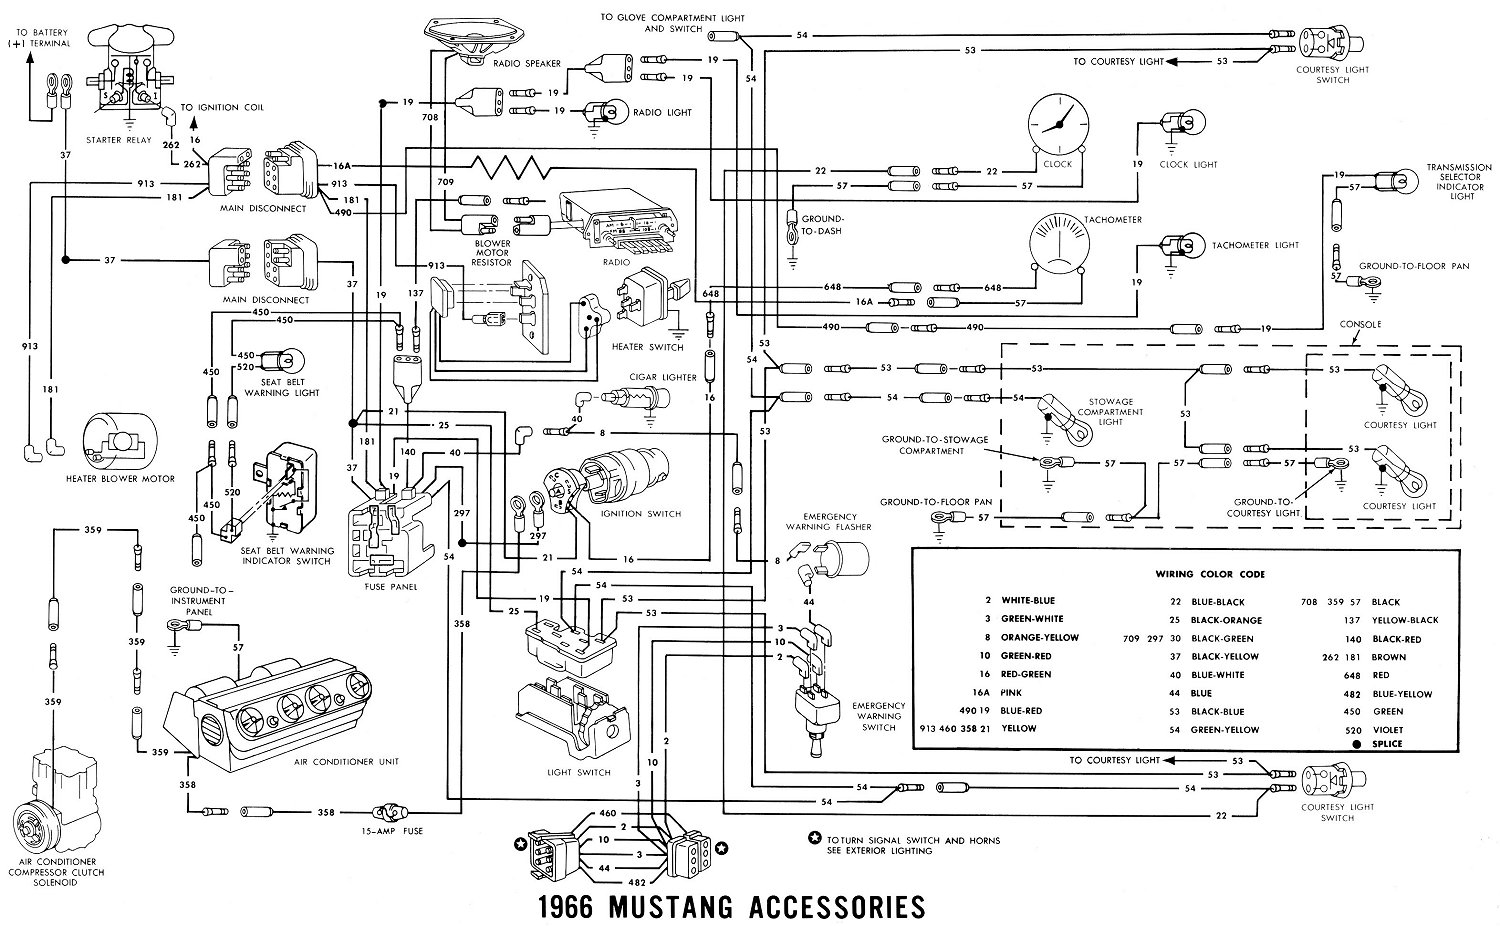 1966 Ford Mustang Radio Wiring Diagram Best Secret Bronco Harness Images Gallery